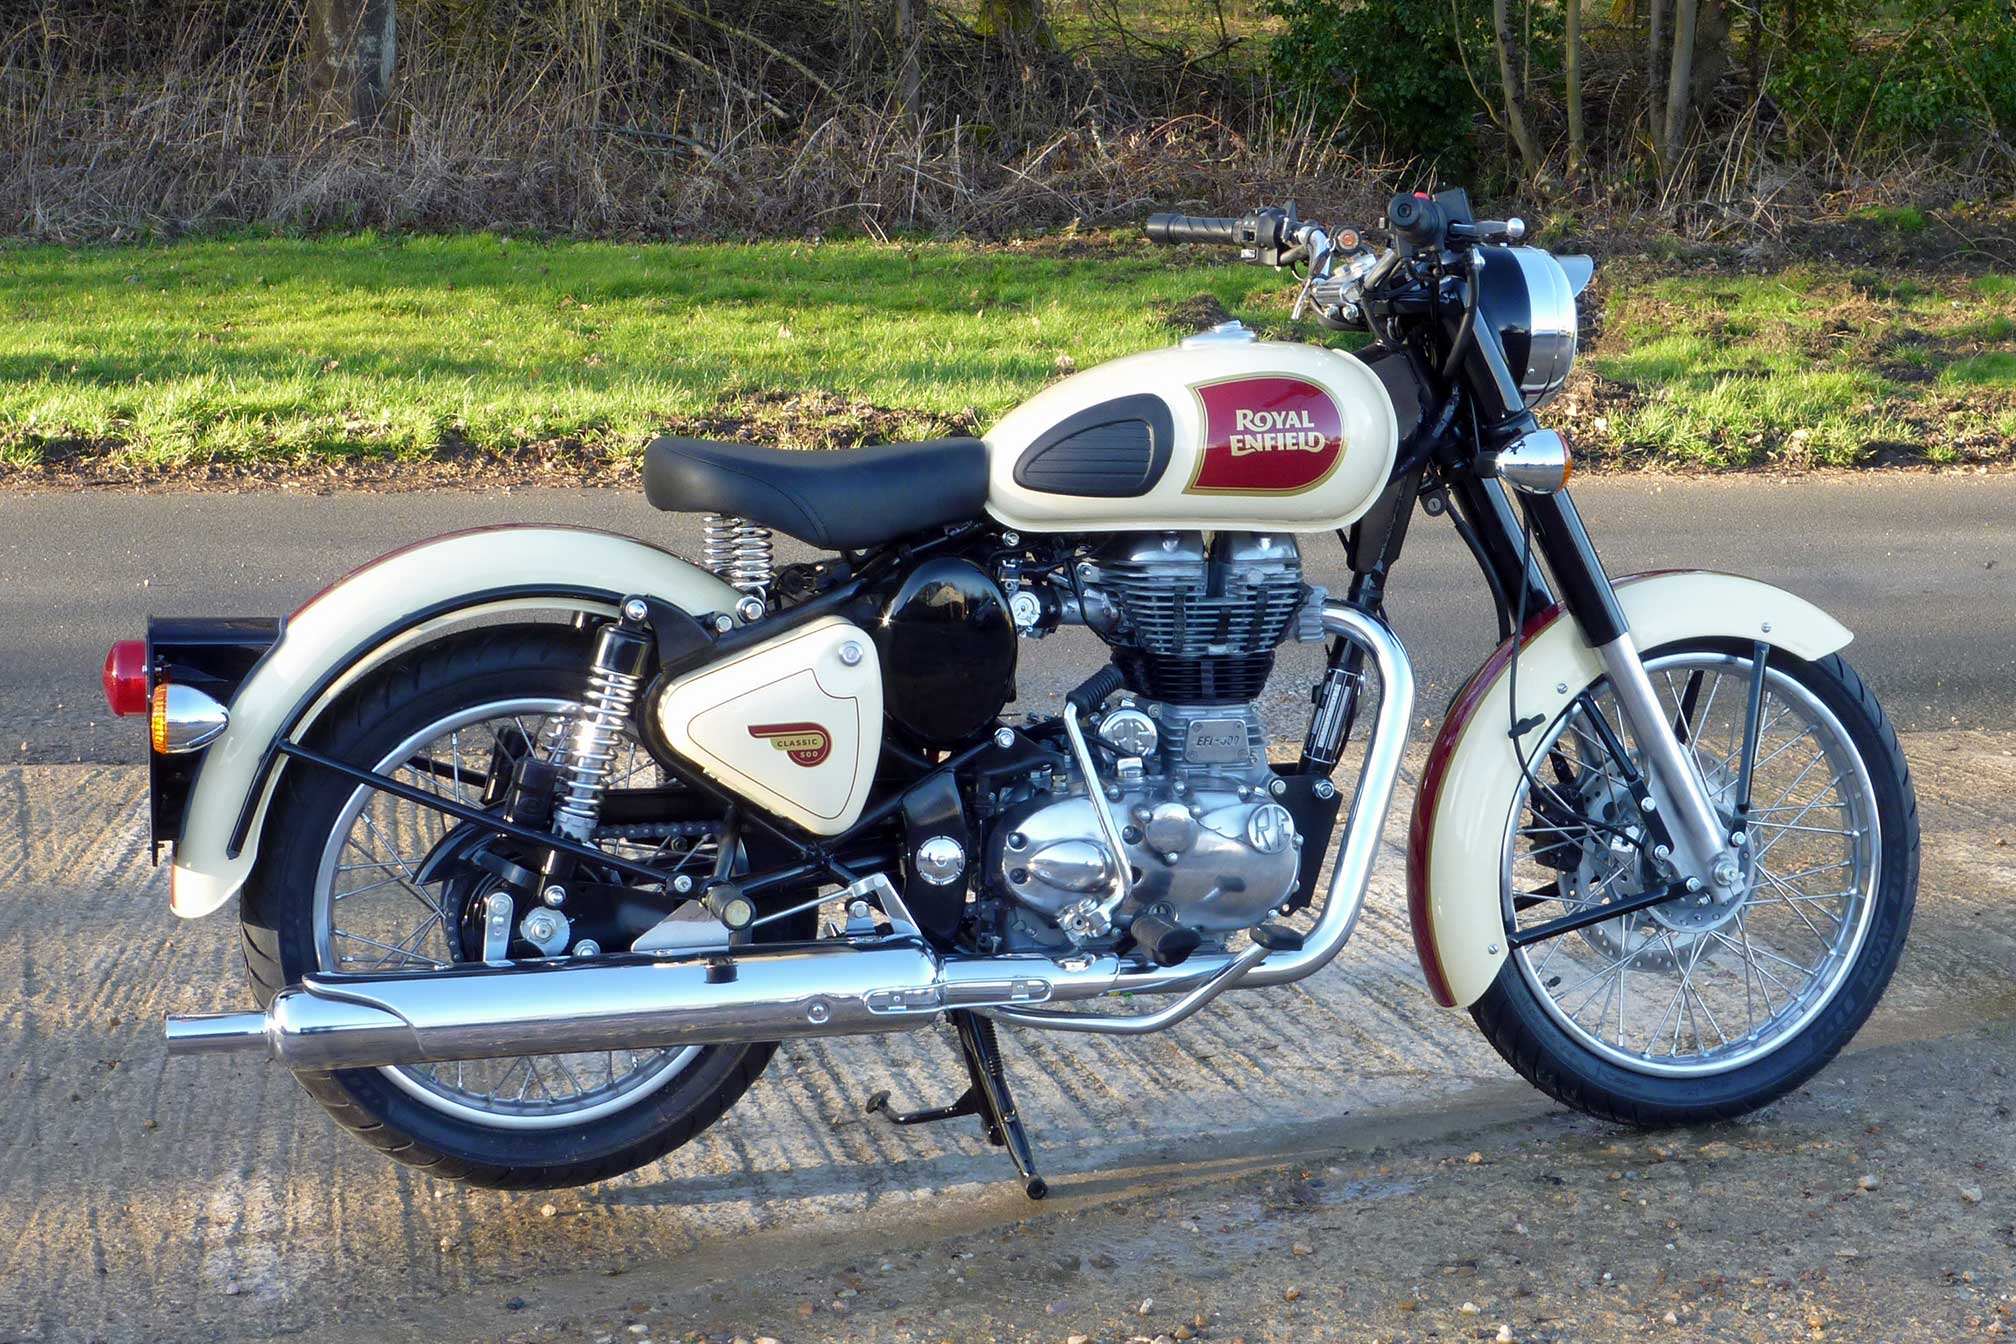 Royal Enfield Bullet 350 Army 1989 images #122476